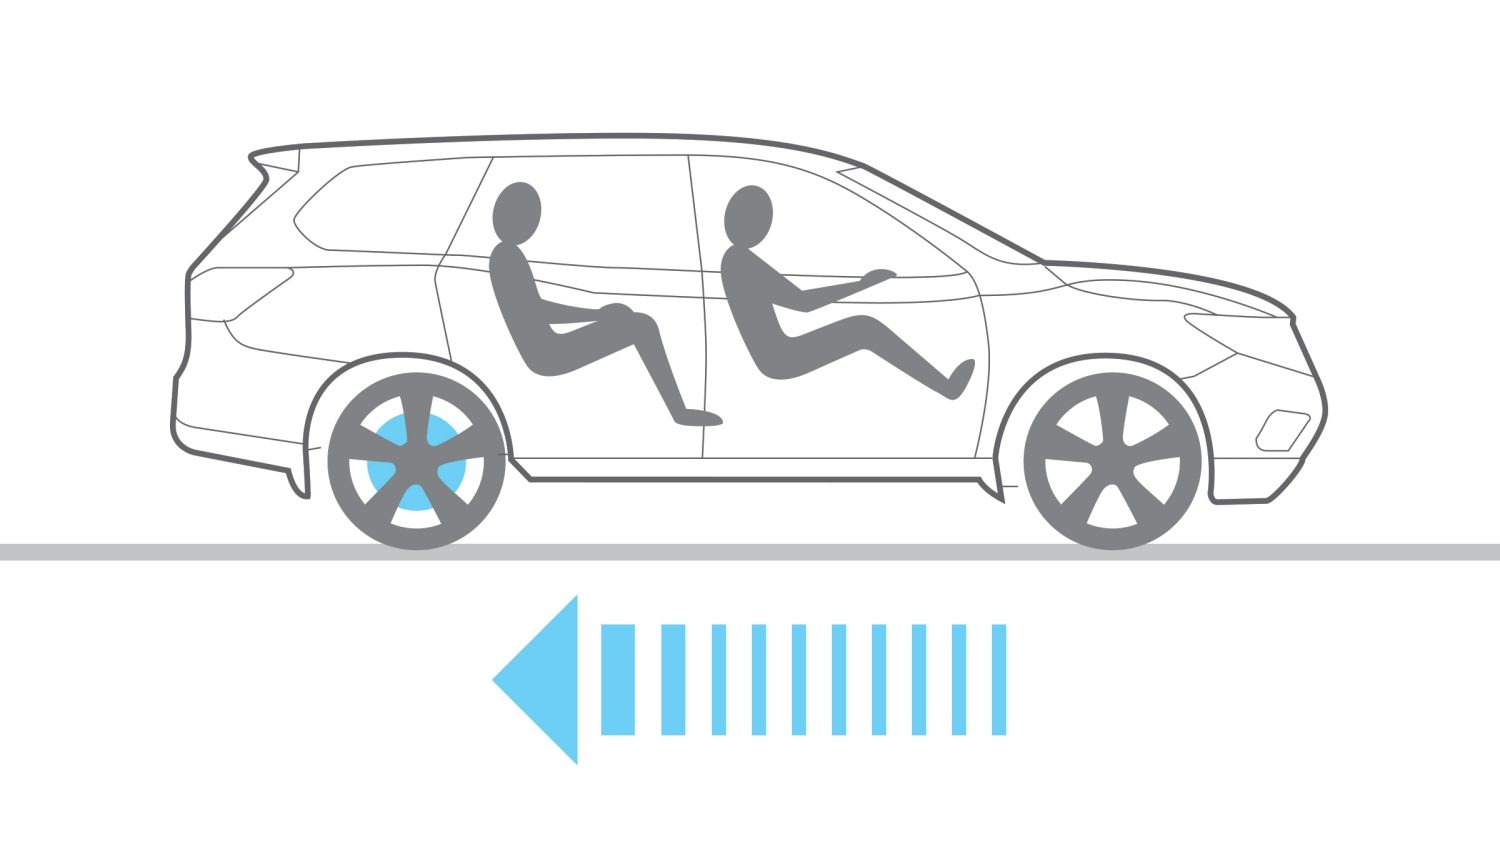 Nissan Pathfinder electronic brake force distribution illustration showing braking power going to rear wheels